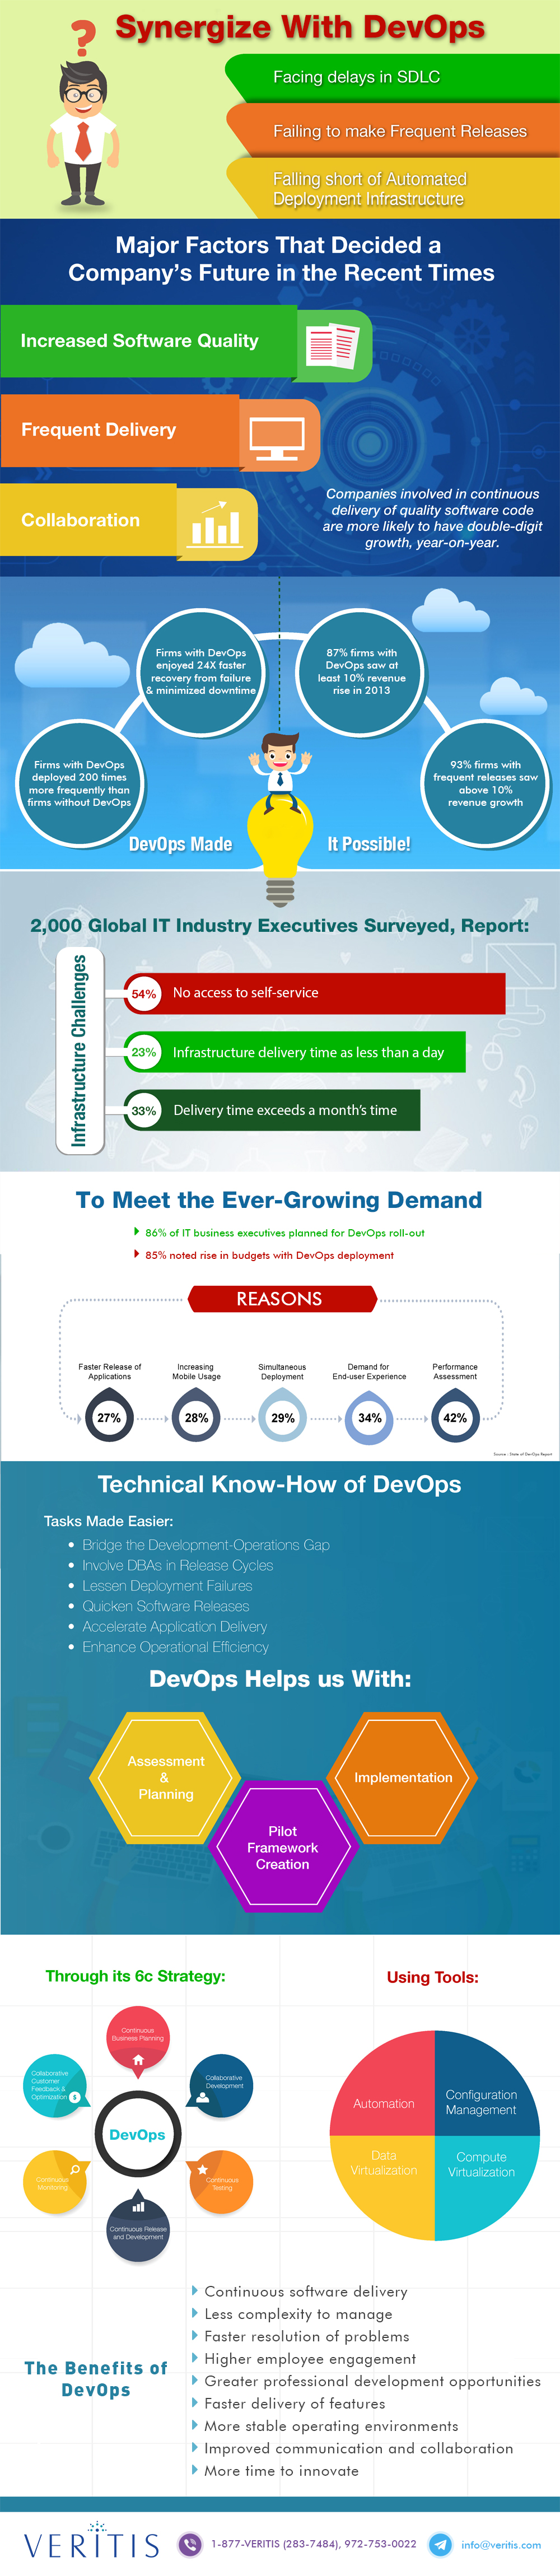 Infographic - Synergize with DevOps Implementation